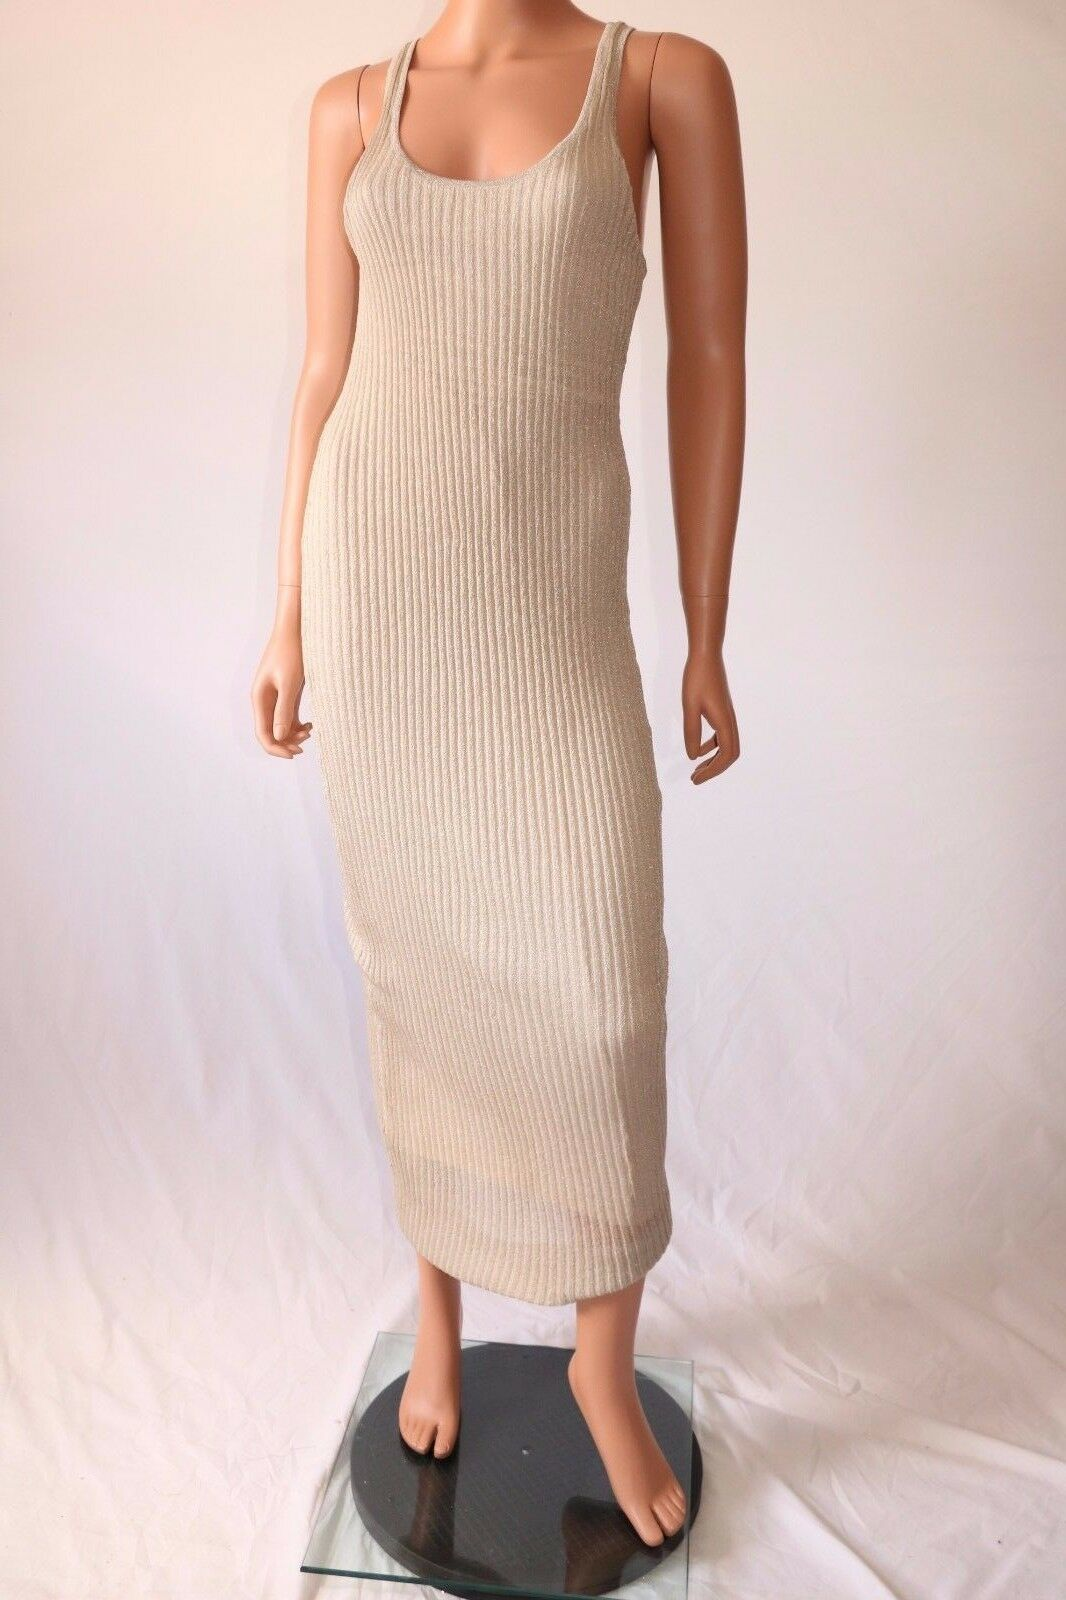 Haute Hippie Beige Sleeveless Sleeveless Sleeveless Lined Knitted Stretch Long Dress a01d52